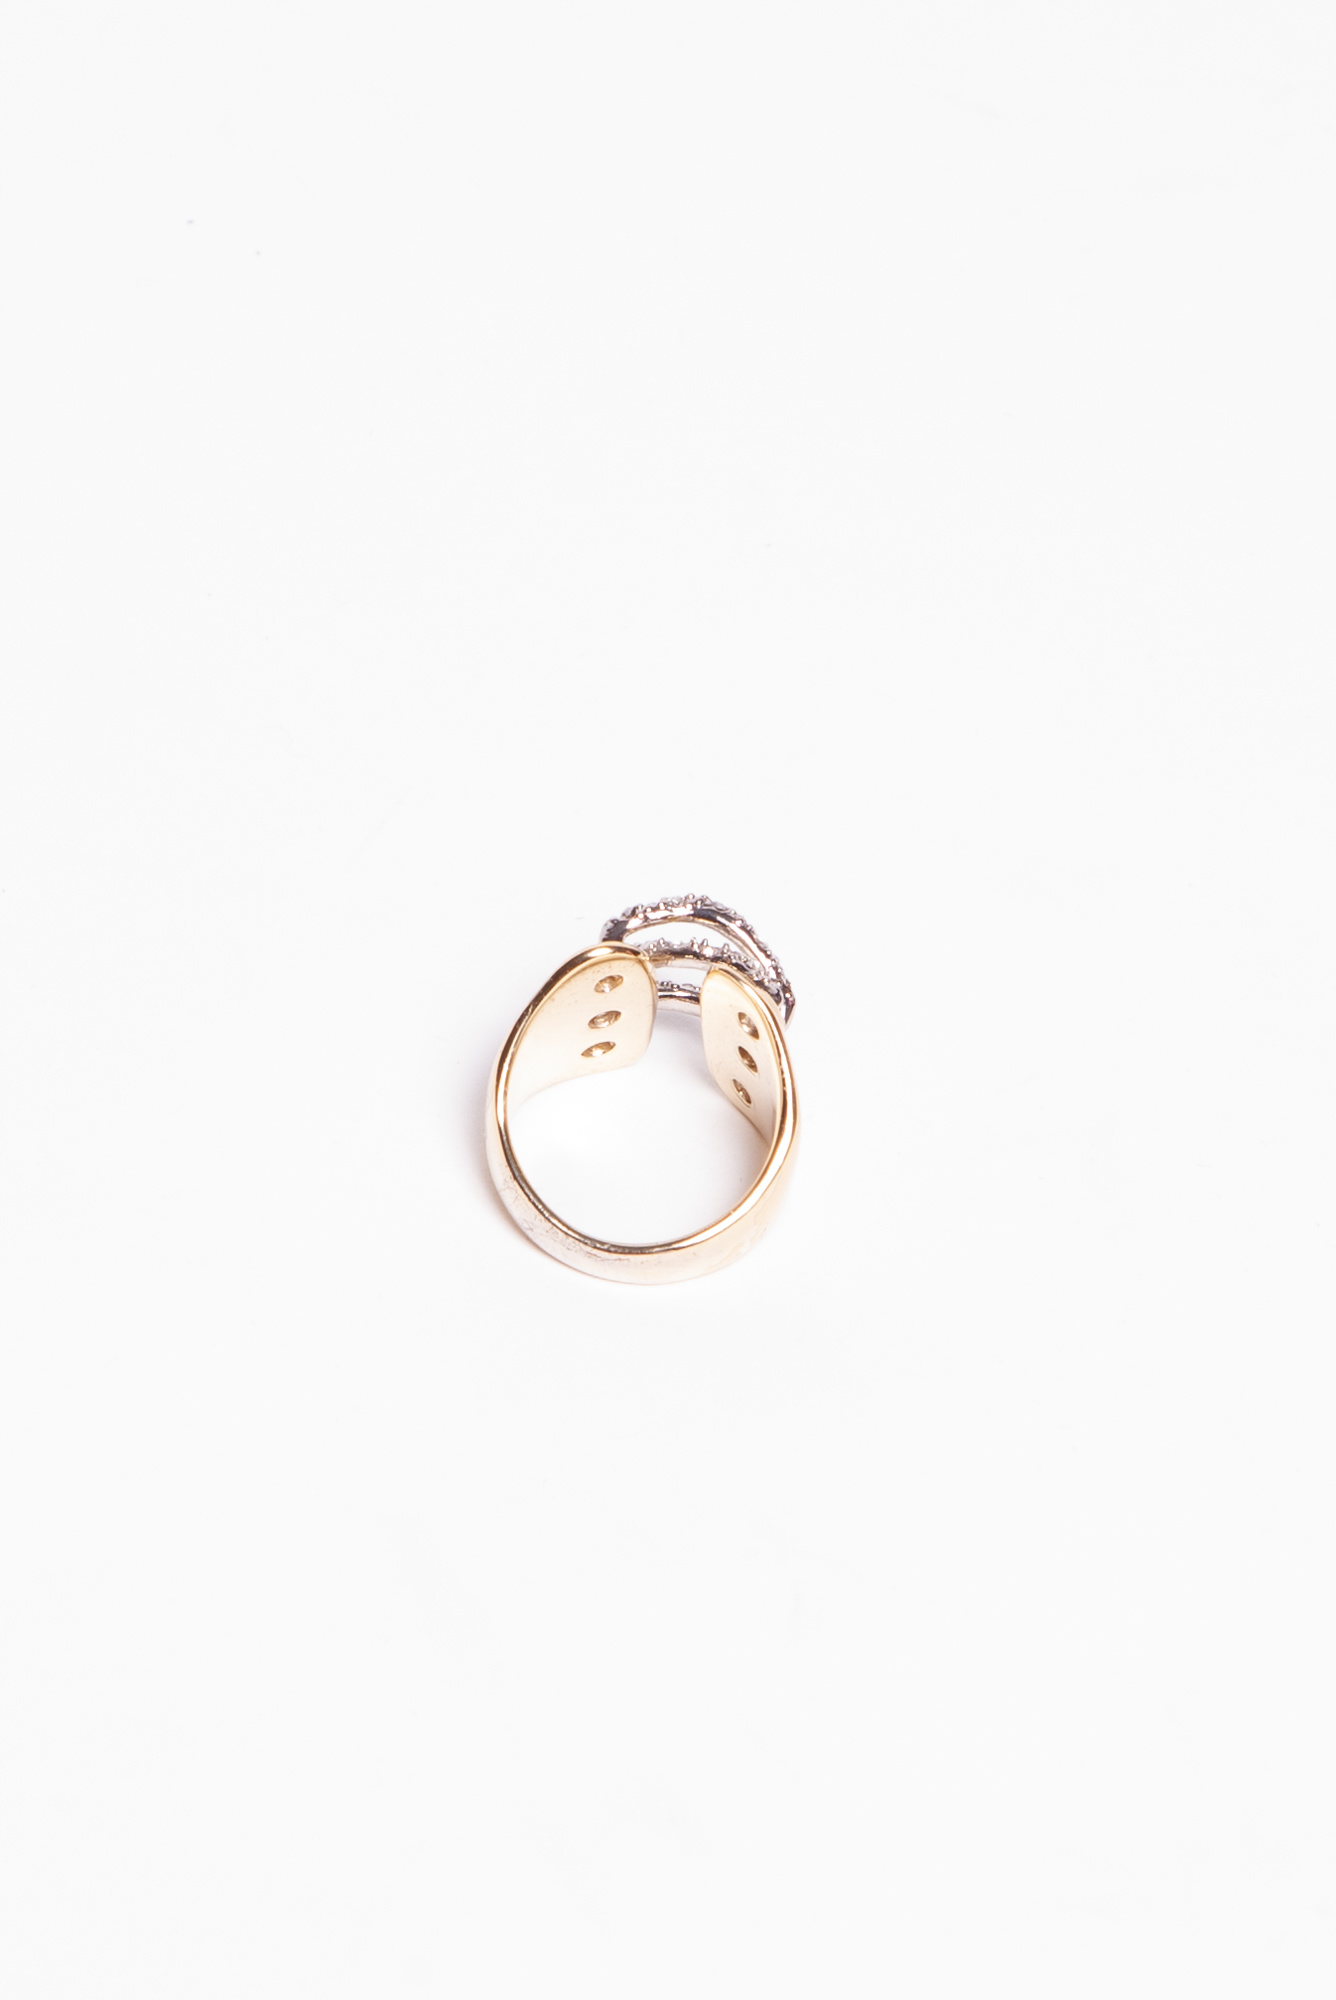 Alexis Bittar GOLDEN RING SET WITH LACED-EFFECT STONES